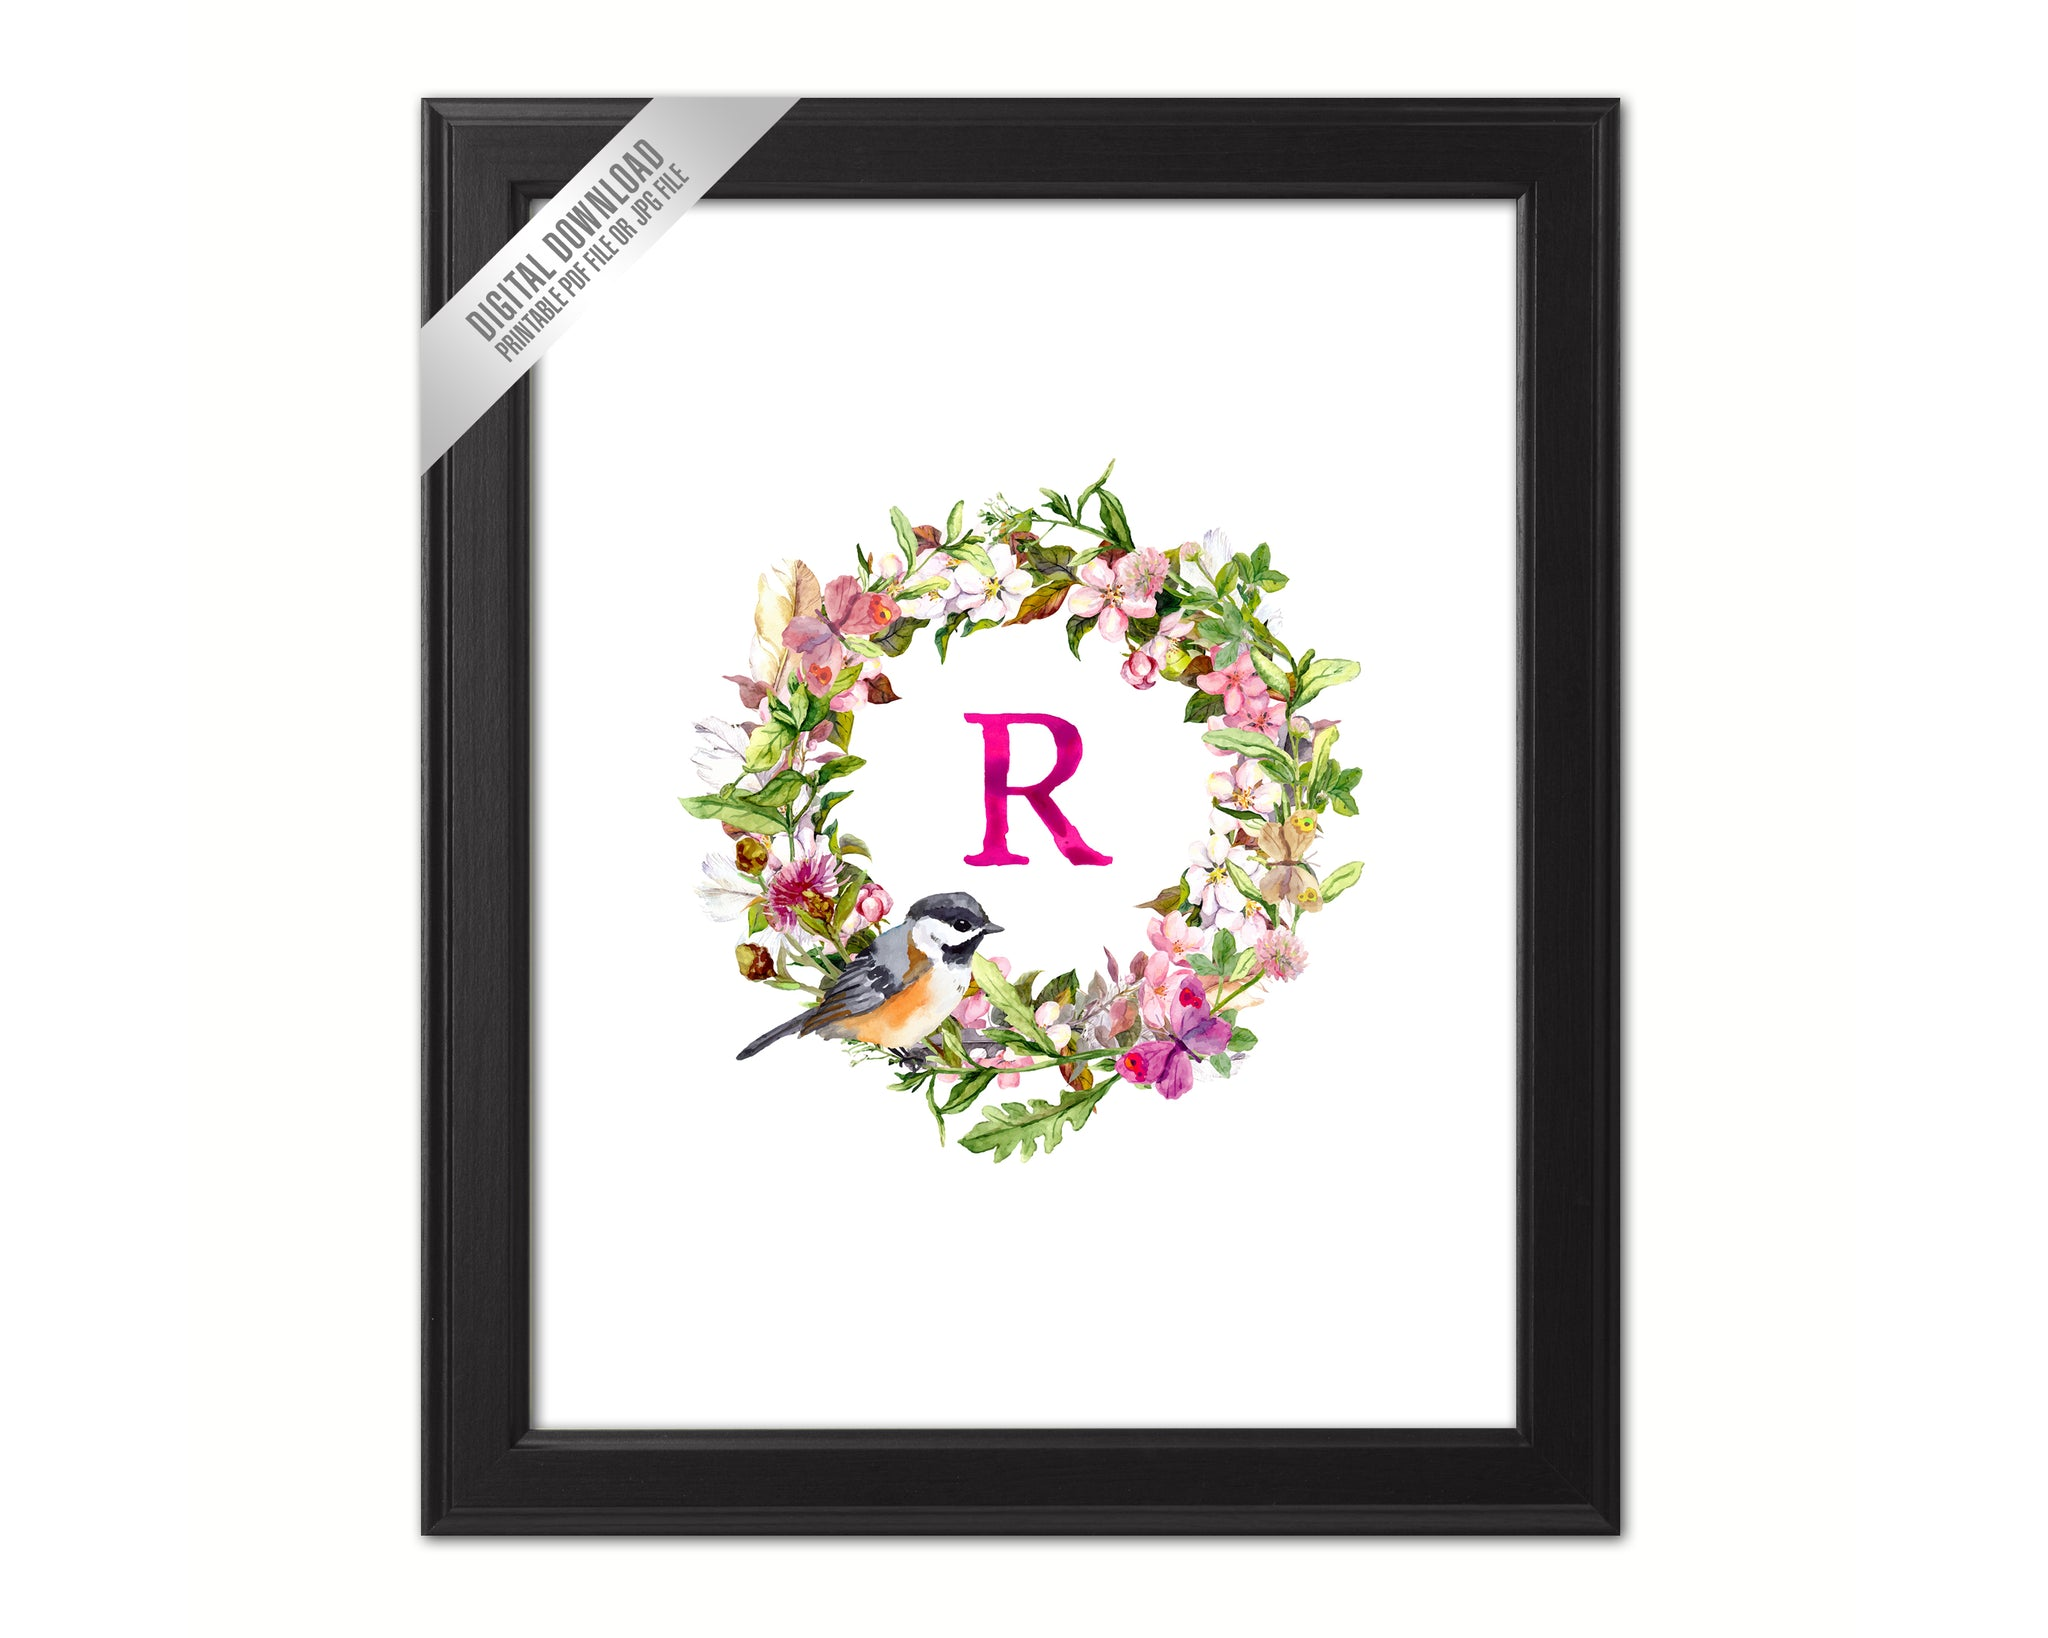 Letter R Monogram Initial Wall Art Custom Letters Printable Home Decor Watercolor Wreath Gift for Her Name Sign Digital Download